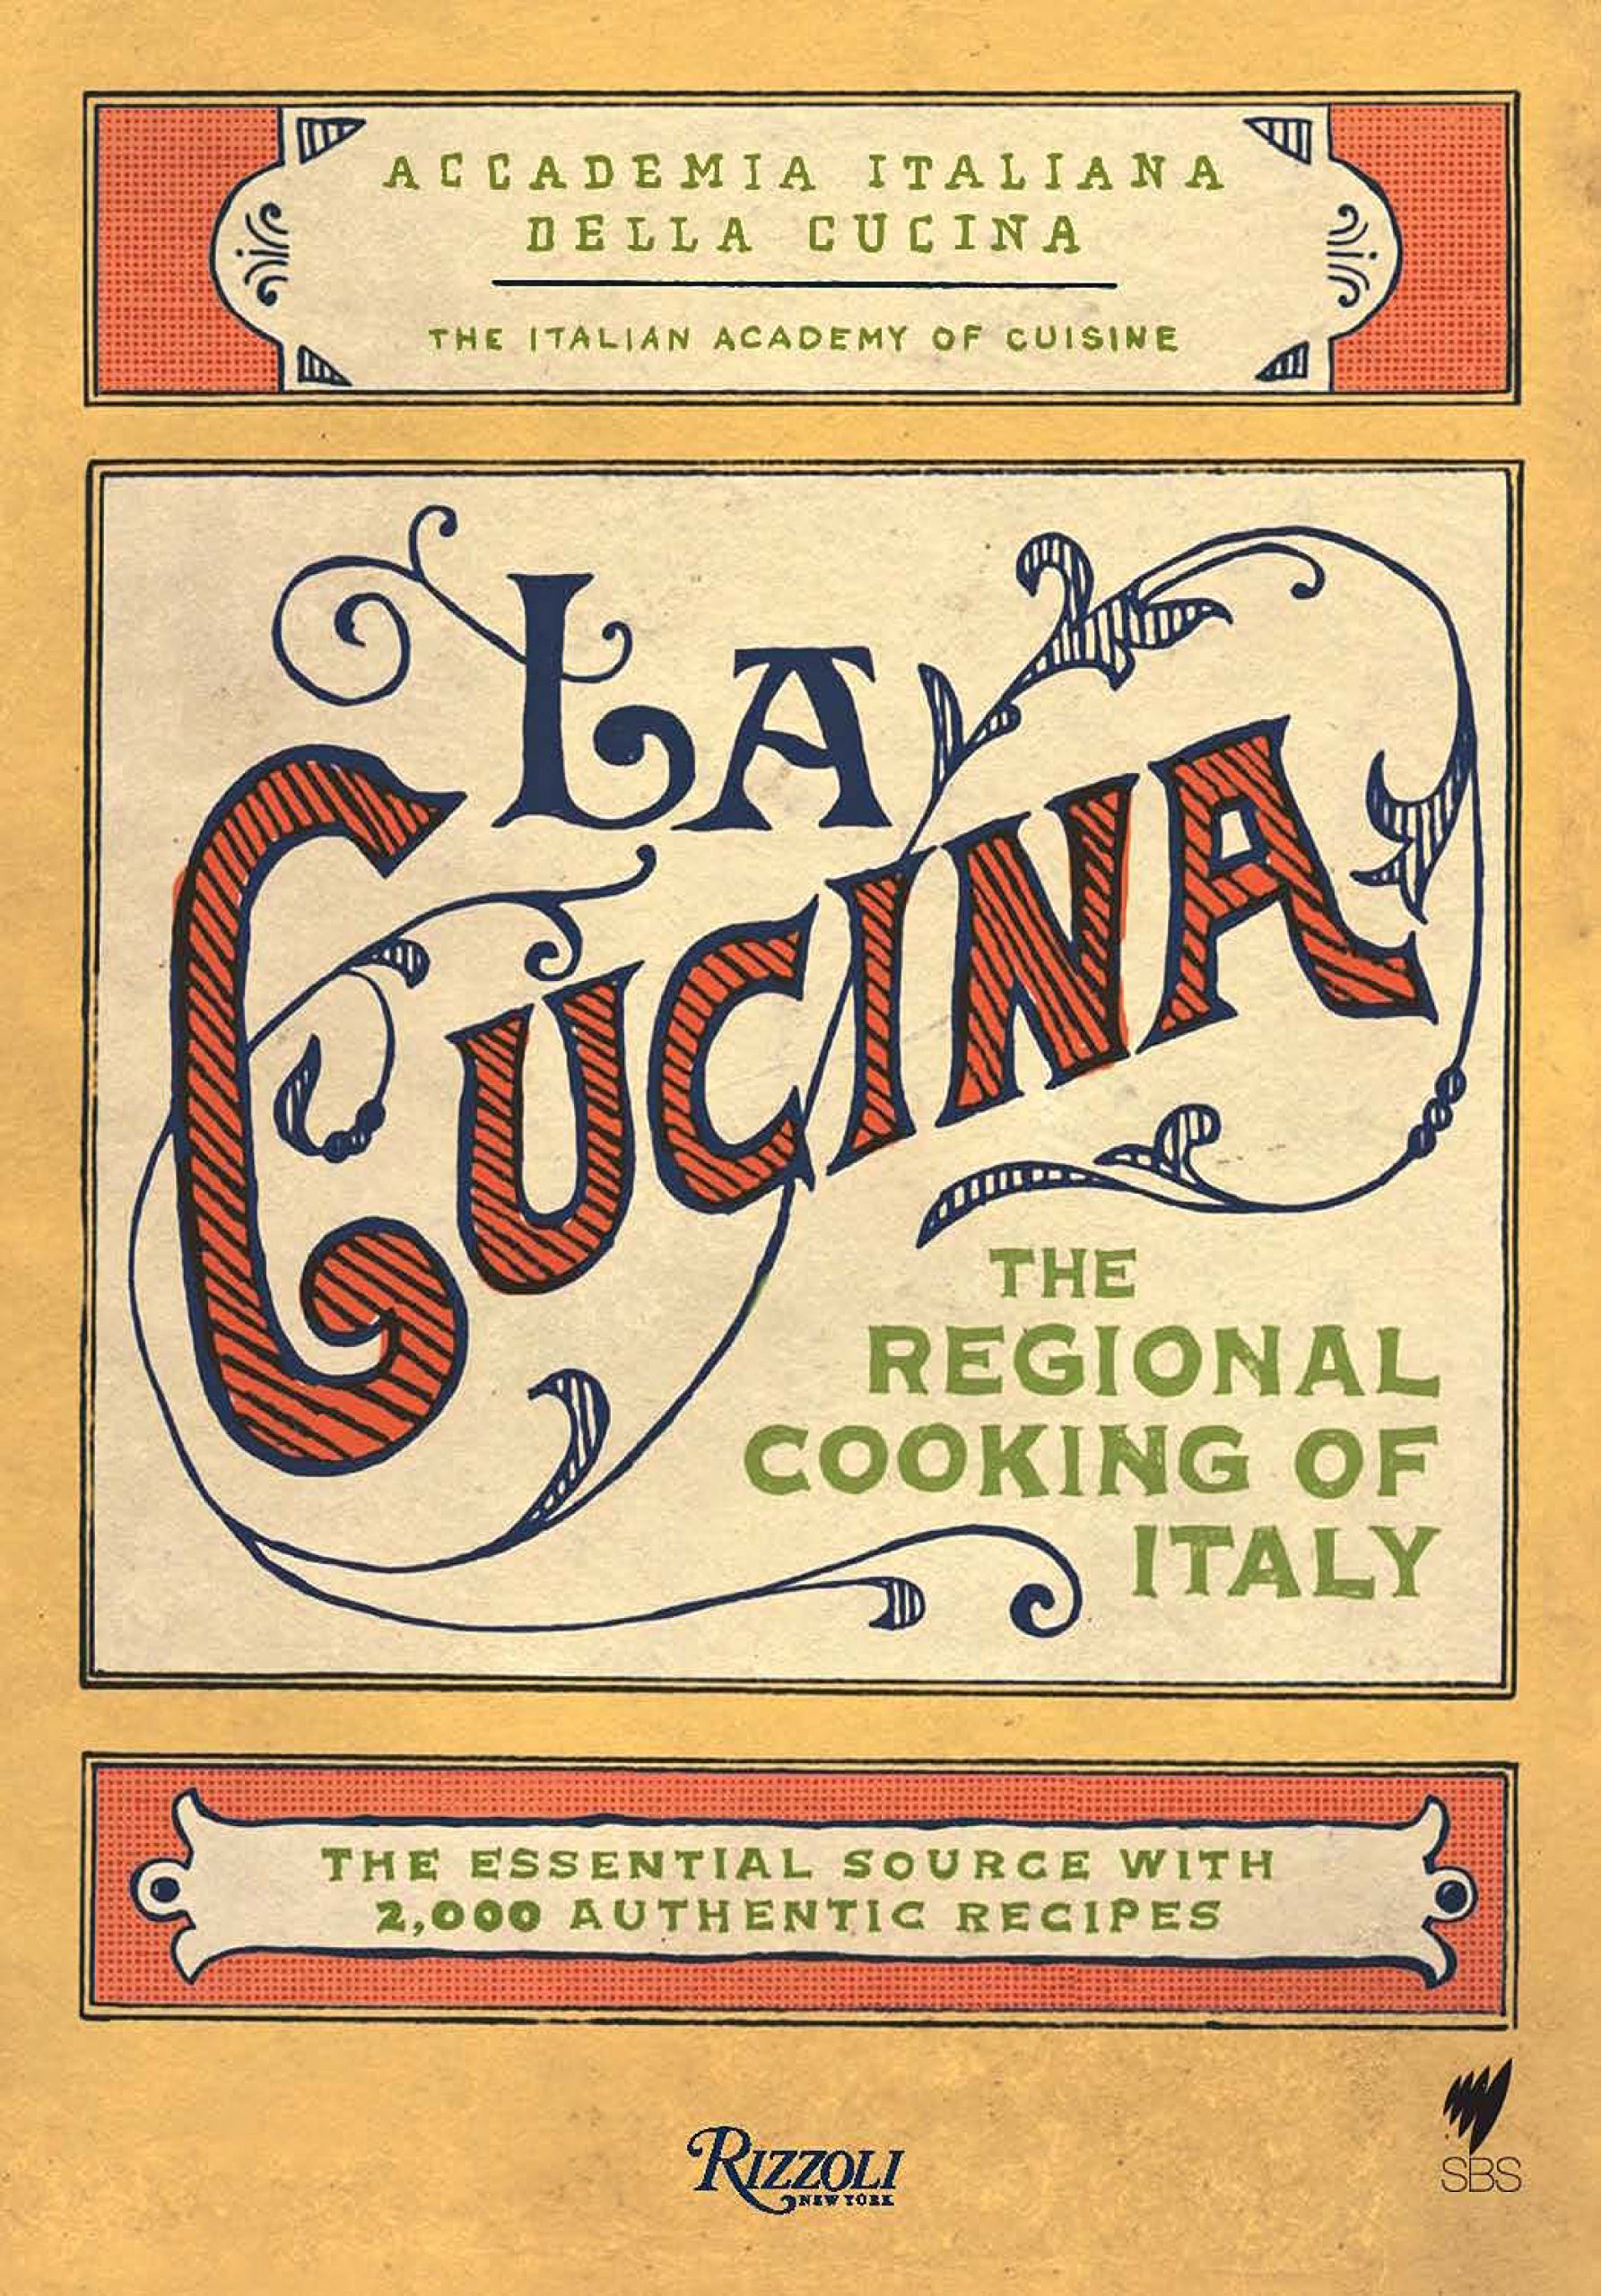 La Cucina: The Regional Cooking of Italy by Rizzoli